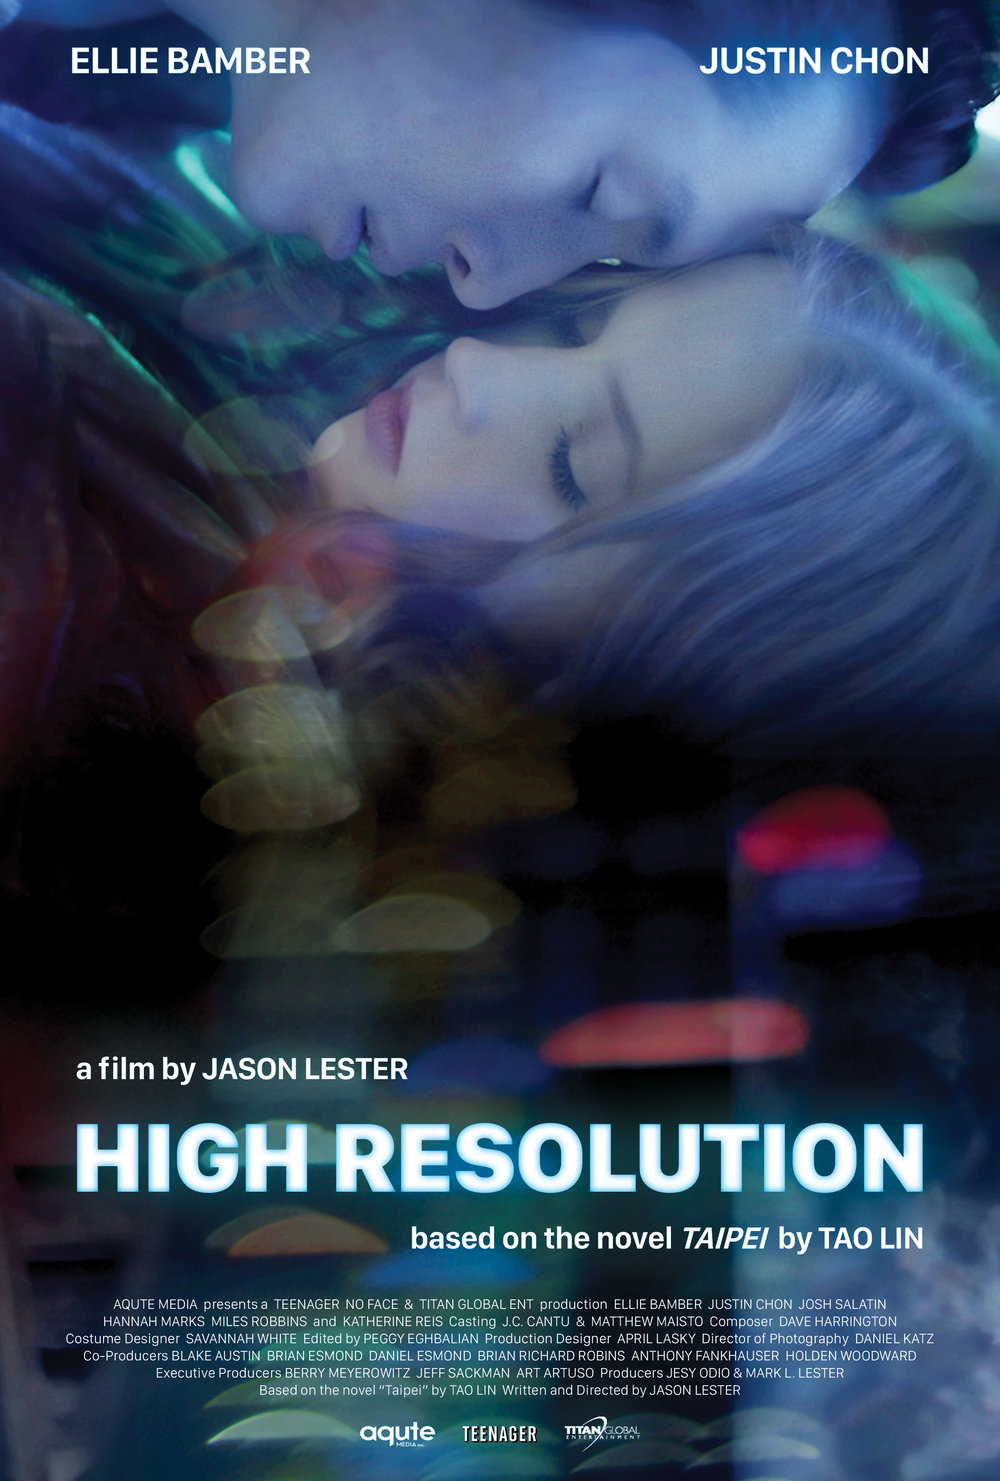 HIGH RESOLUTION - is a feature-length adaptation of Tao Lin's novel